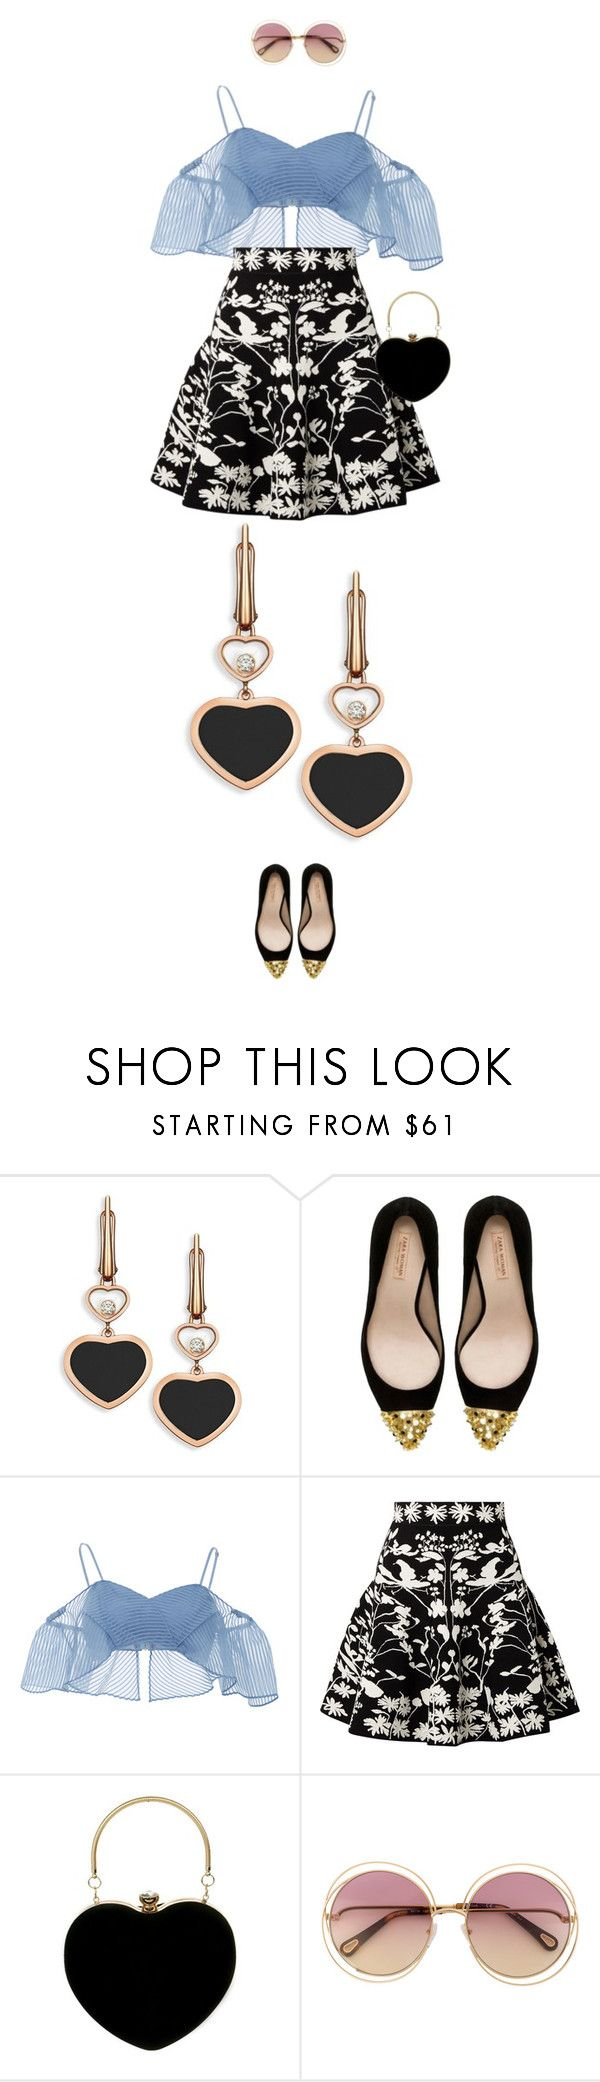 """""""eva2156"""" by evava-c ❤ liked on Polyvore featuring Chopard, Zara, Alice McCall and Alexander McQueen"""